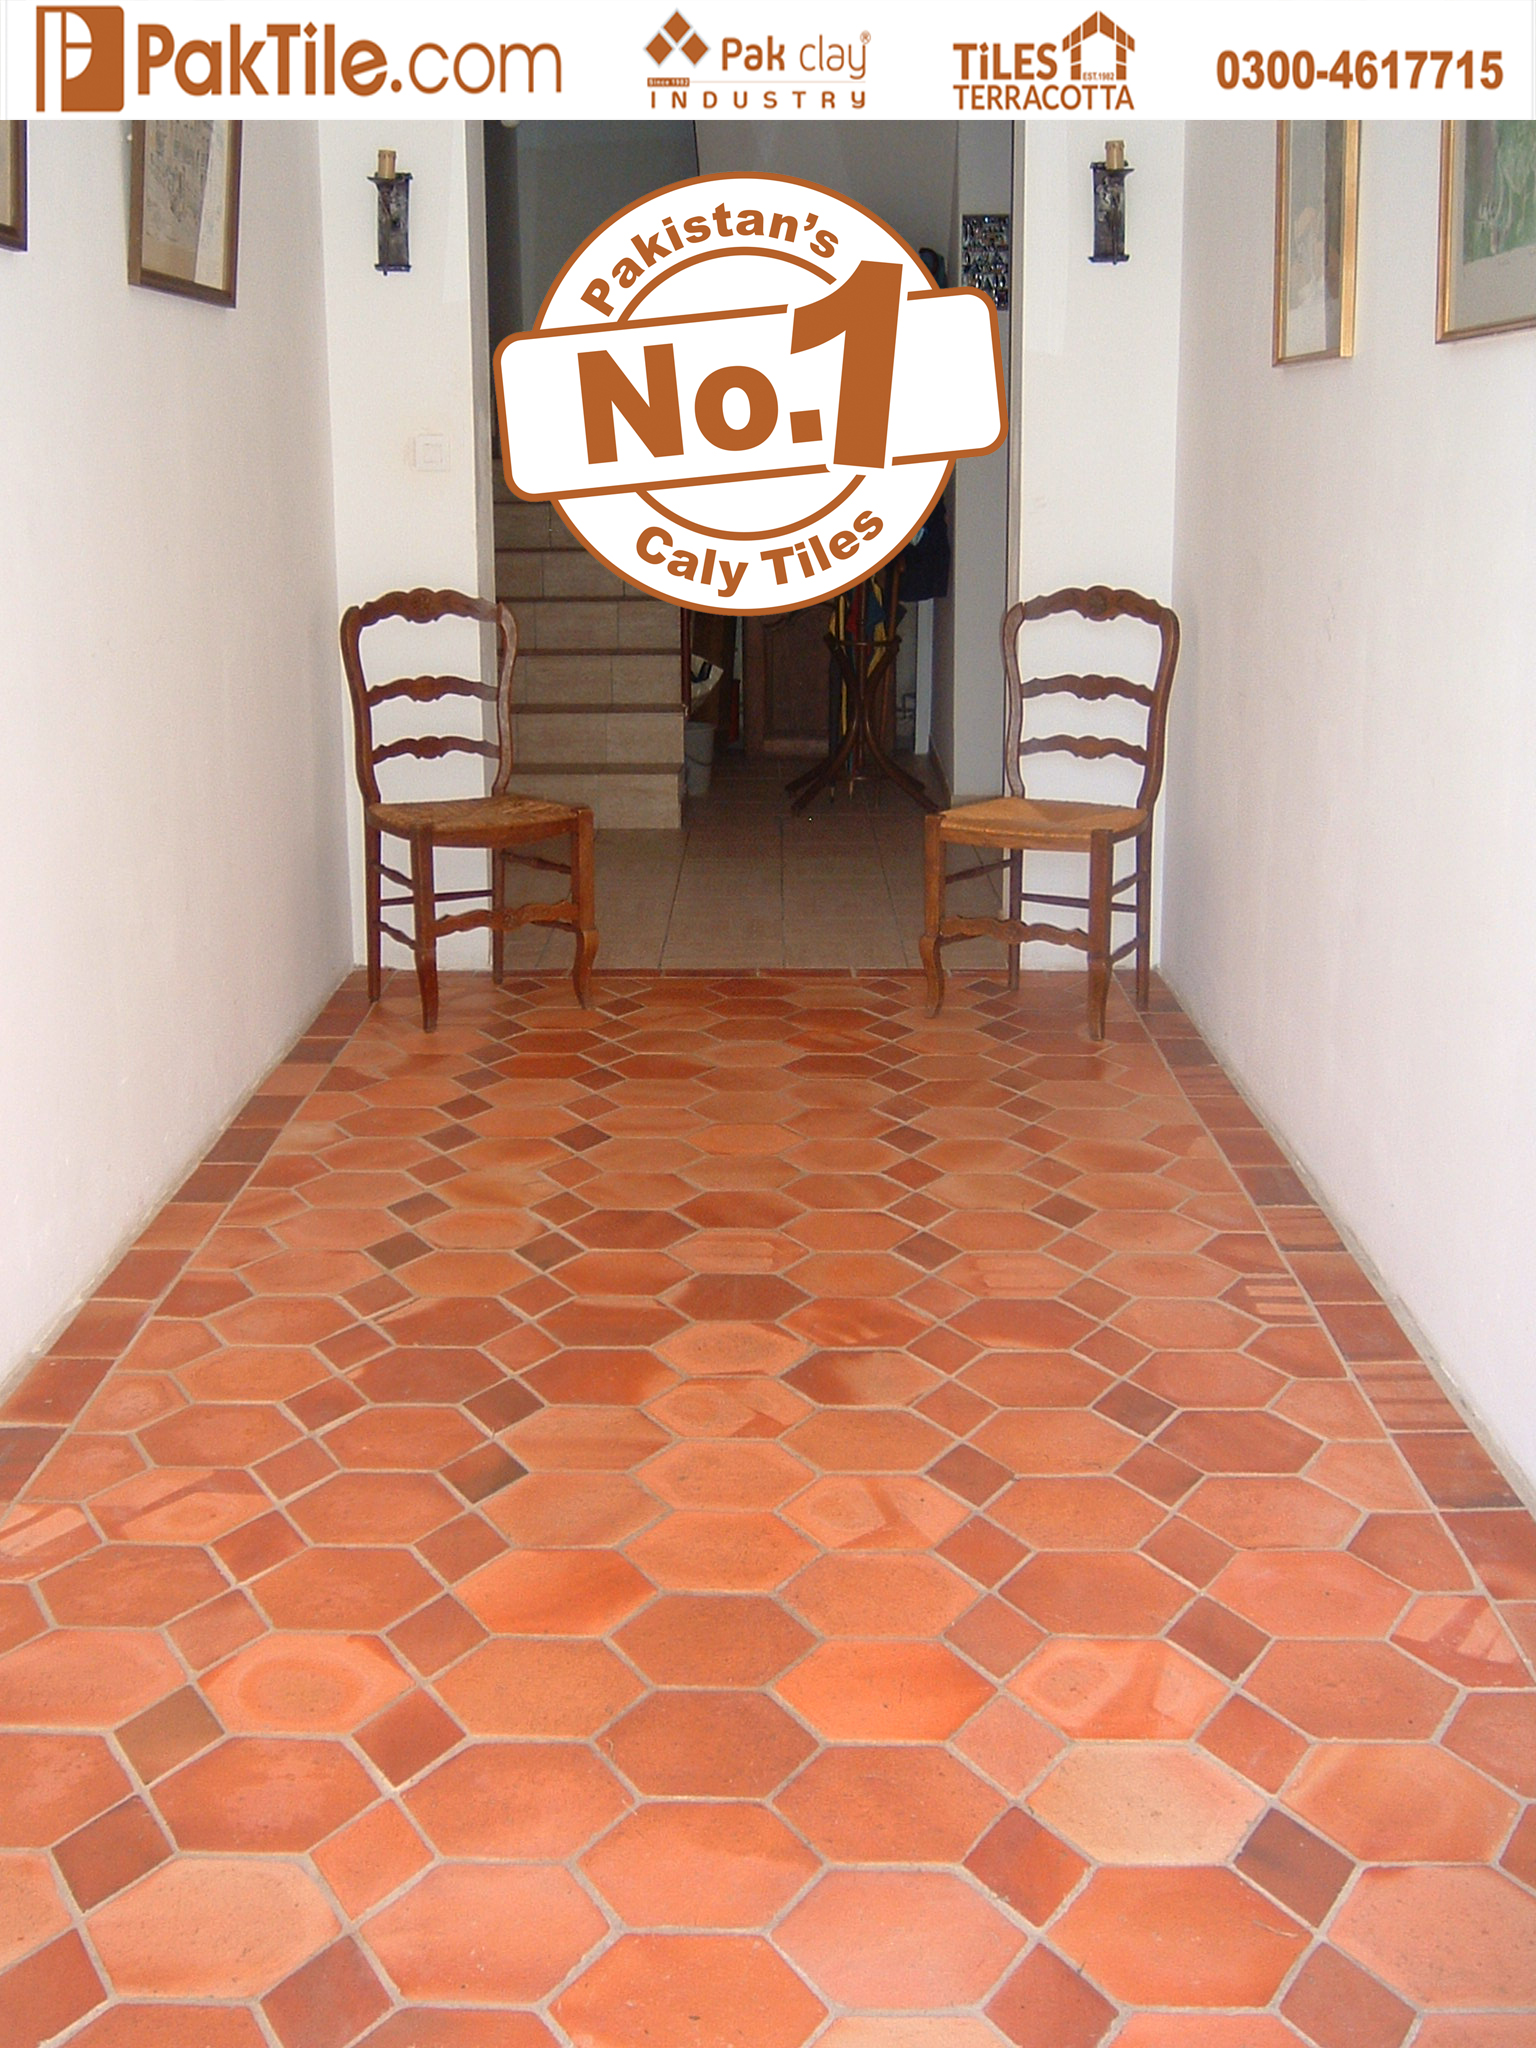 5 Hexagon Shape Red Brick Terracotta Living Room Flooring Tiles Prices in Islamabad Pakistan Photos